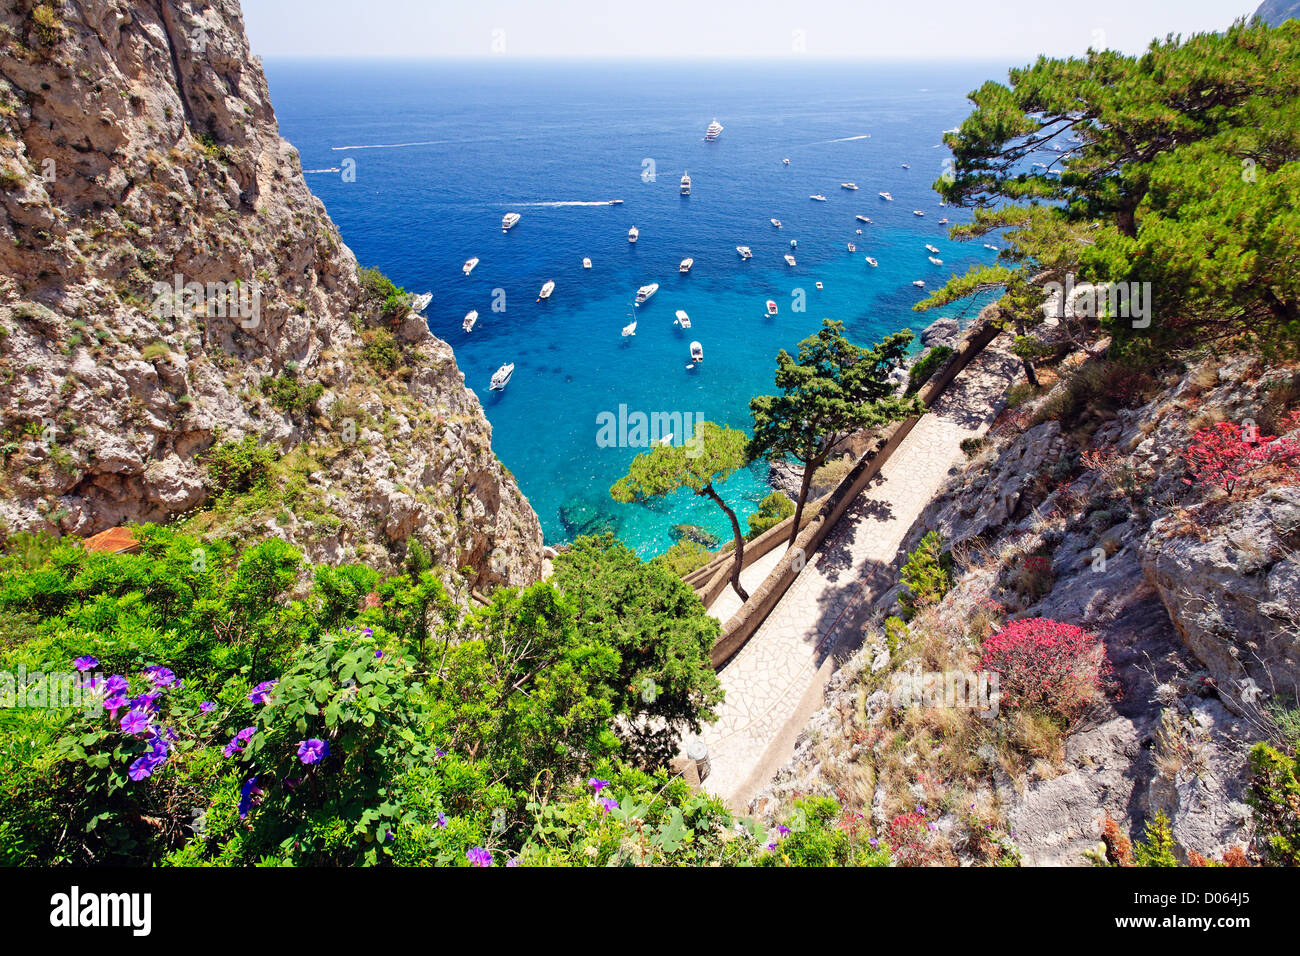 High Angle View of Coastline with a Trail, Via Krupps, Capri, Campania, Italy - Stock Image